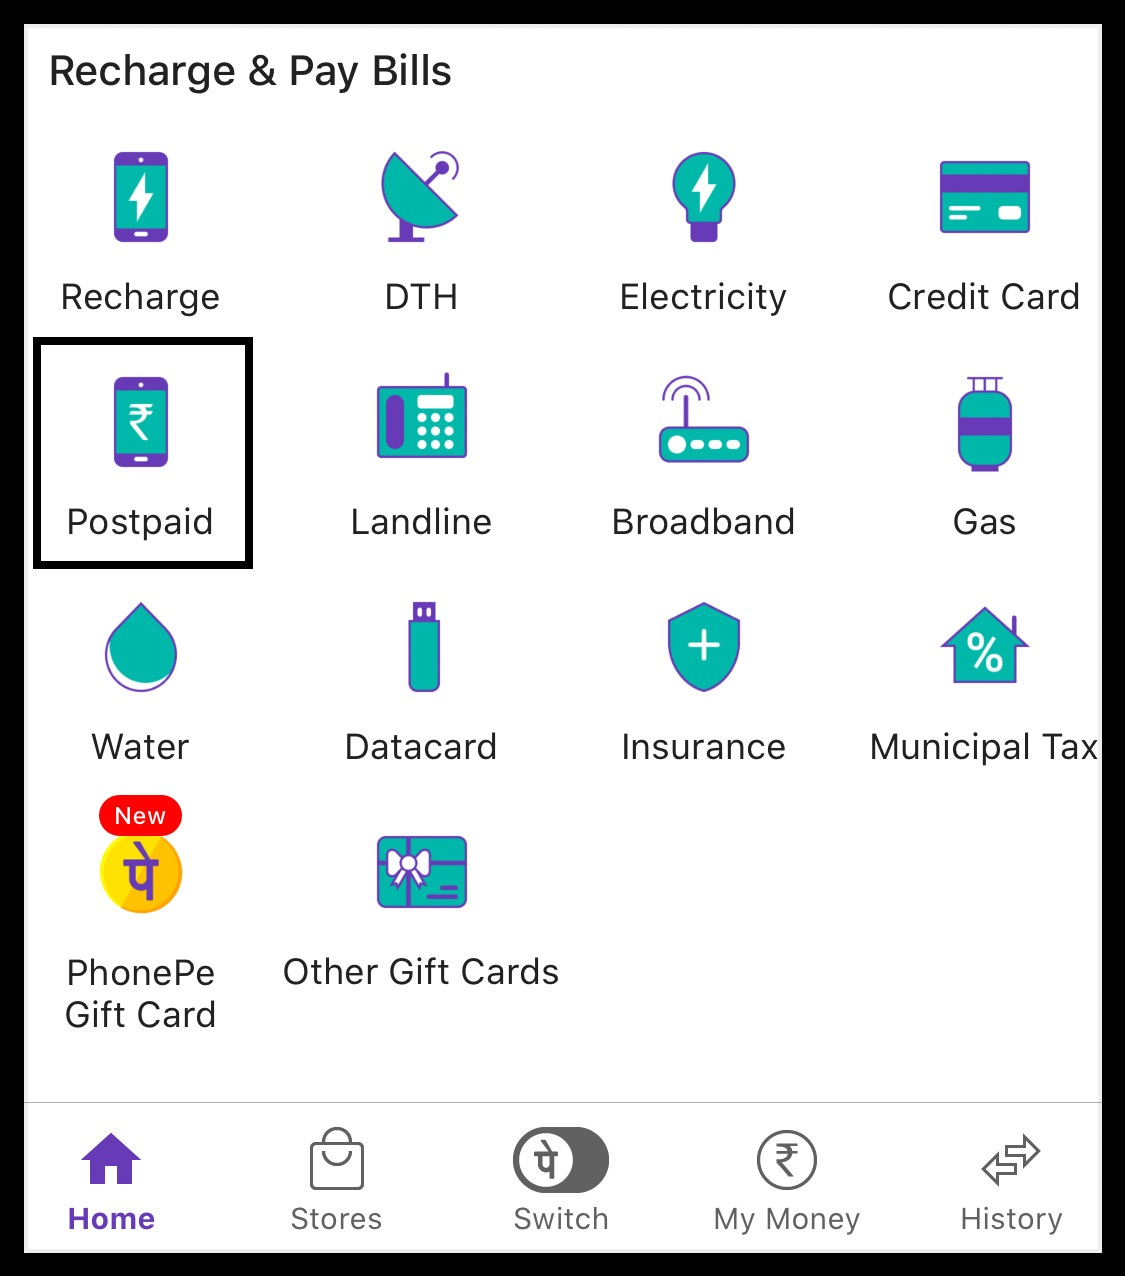 Postpaid Bill on PhonePe